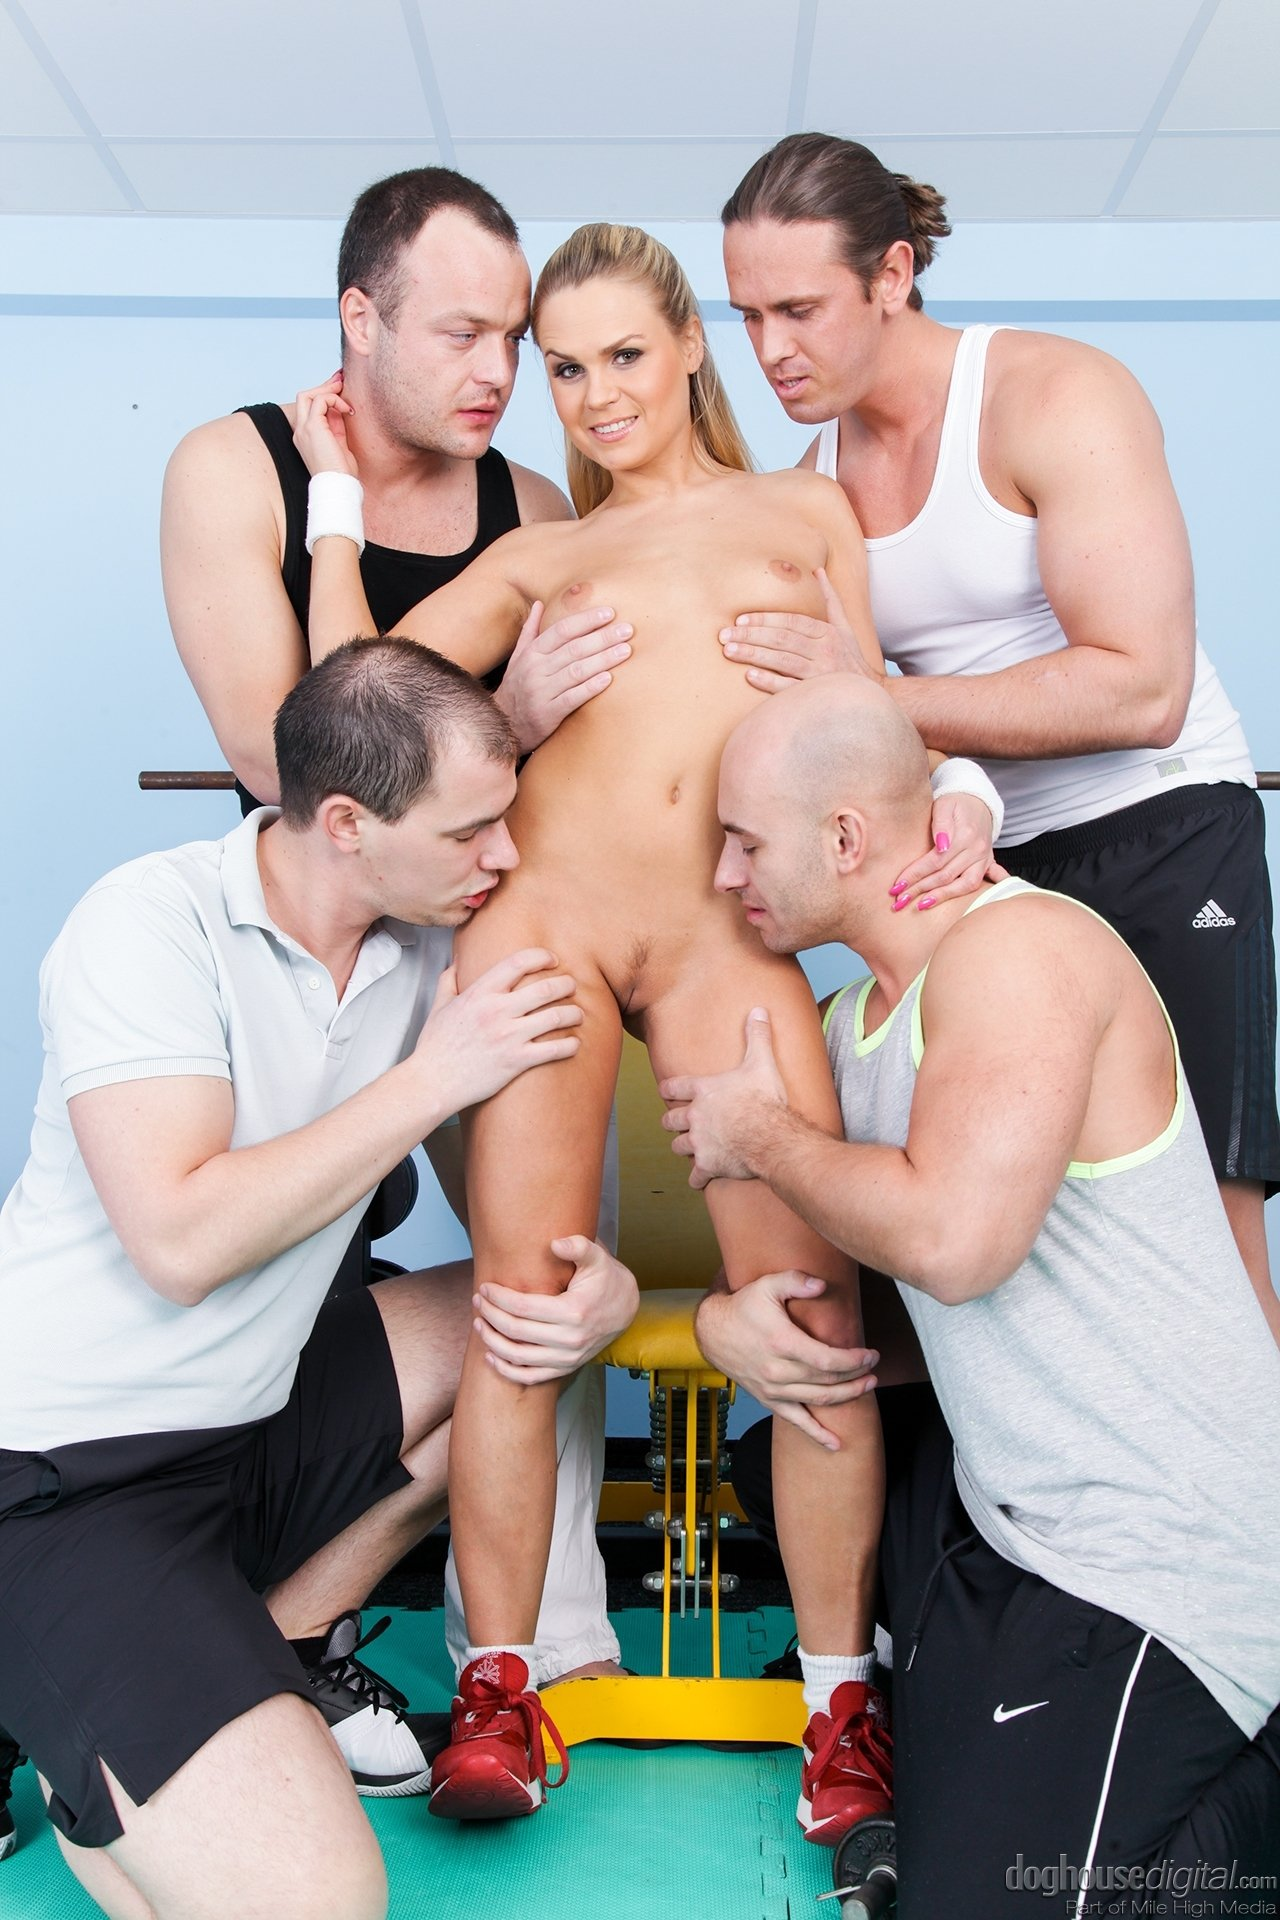 Pussy fuck by five man Bmw boobs Erotic wet crack humping voyer